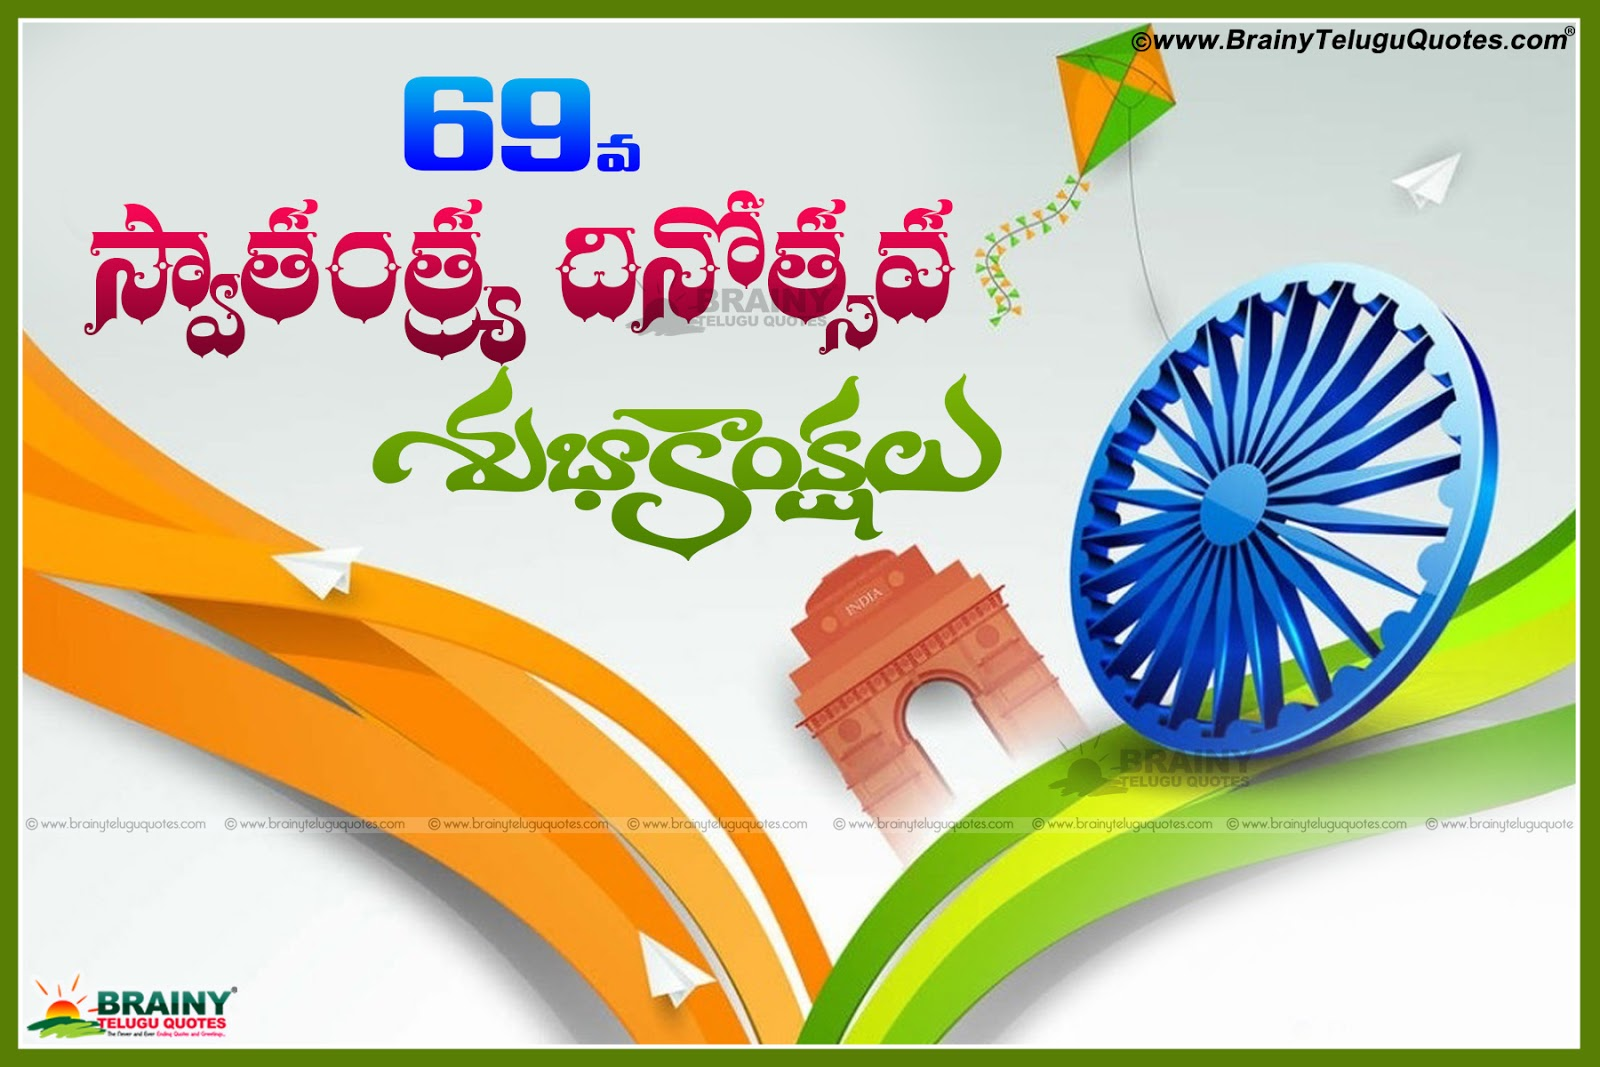 ... Grunge Independence Day Talugu Language Quotes Hd Wallpapers  Independence Day Messages Online Best Latest Telugu Independence Day  Messages With Freedom ...